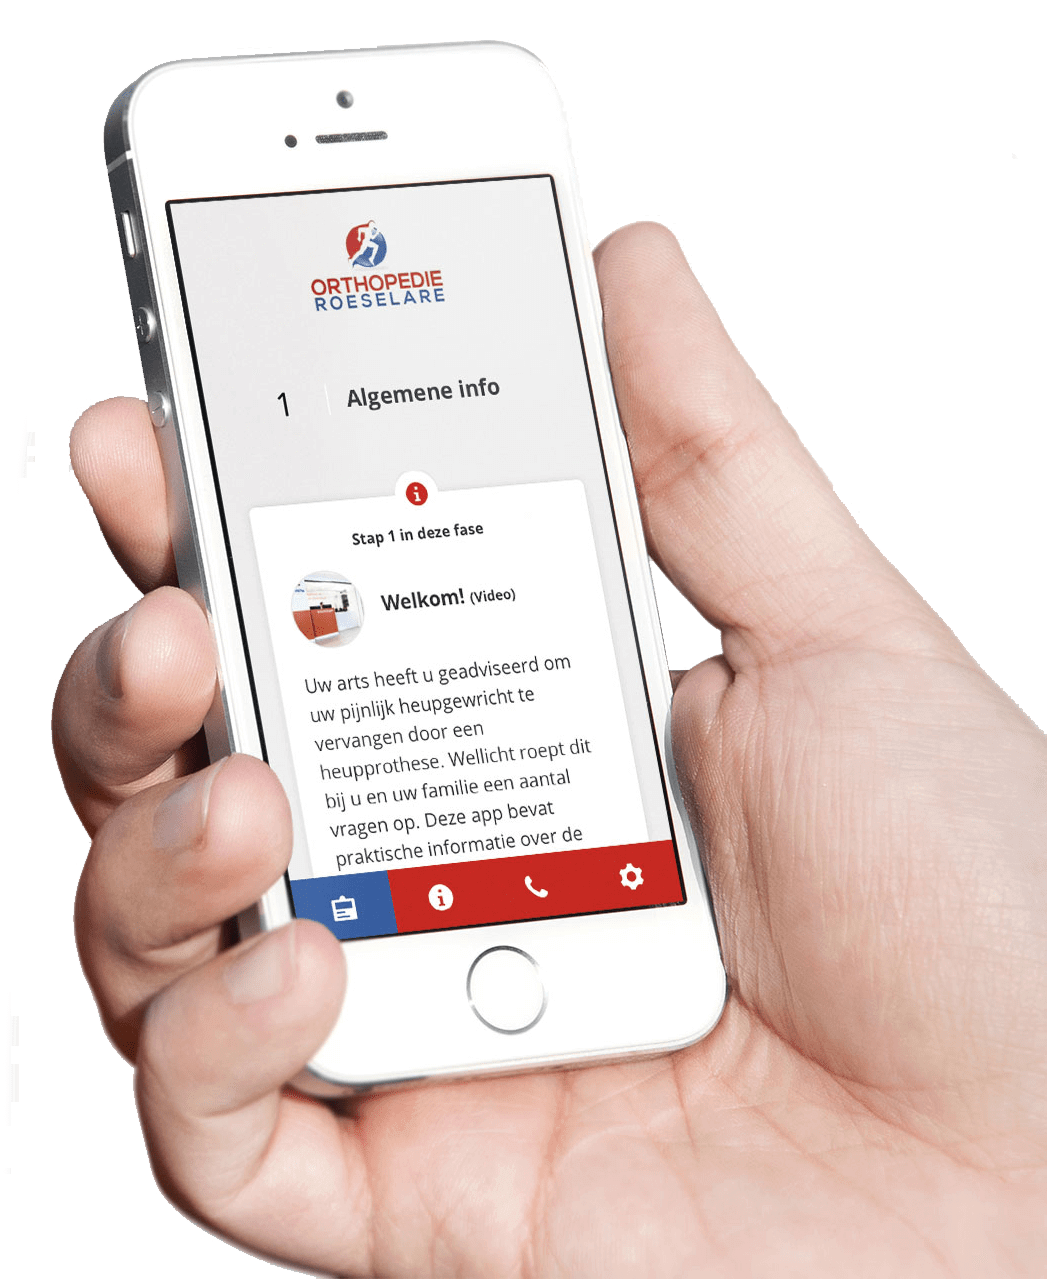 Download gratis de Orthopedie Roeselare app.